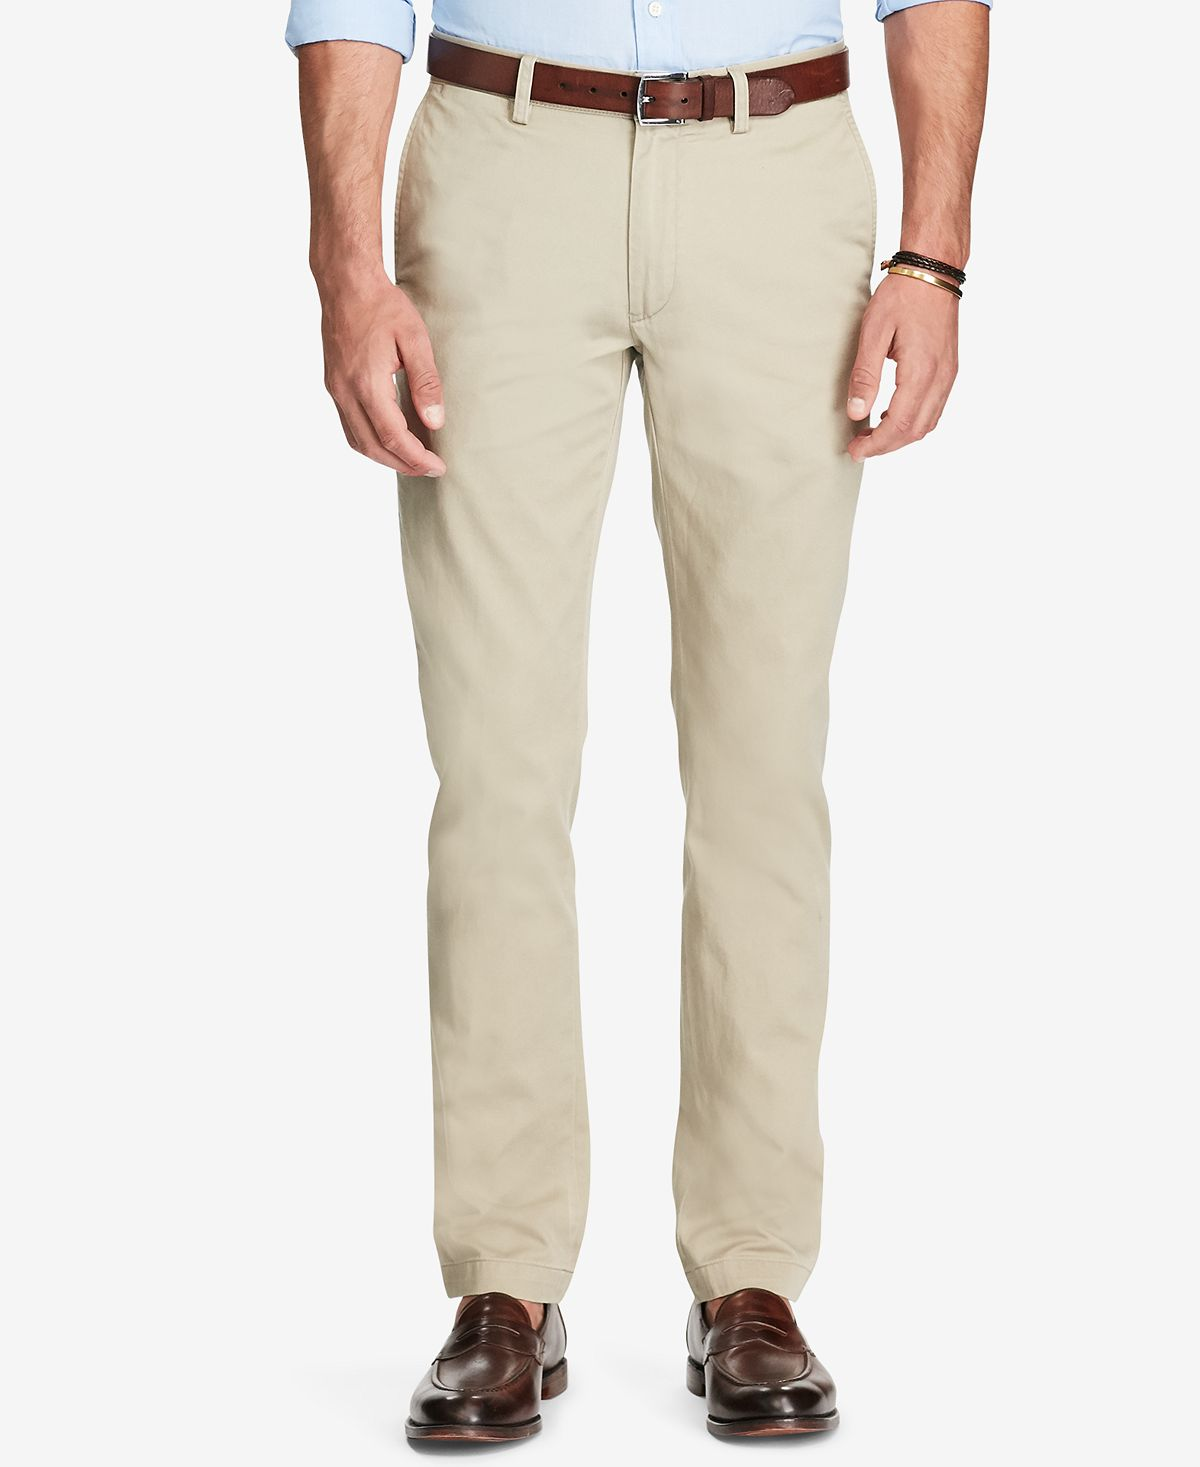 Polo Ralph Lauren Slim-fit Chino Pants Valley Tan